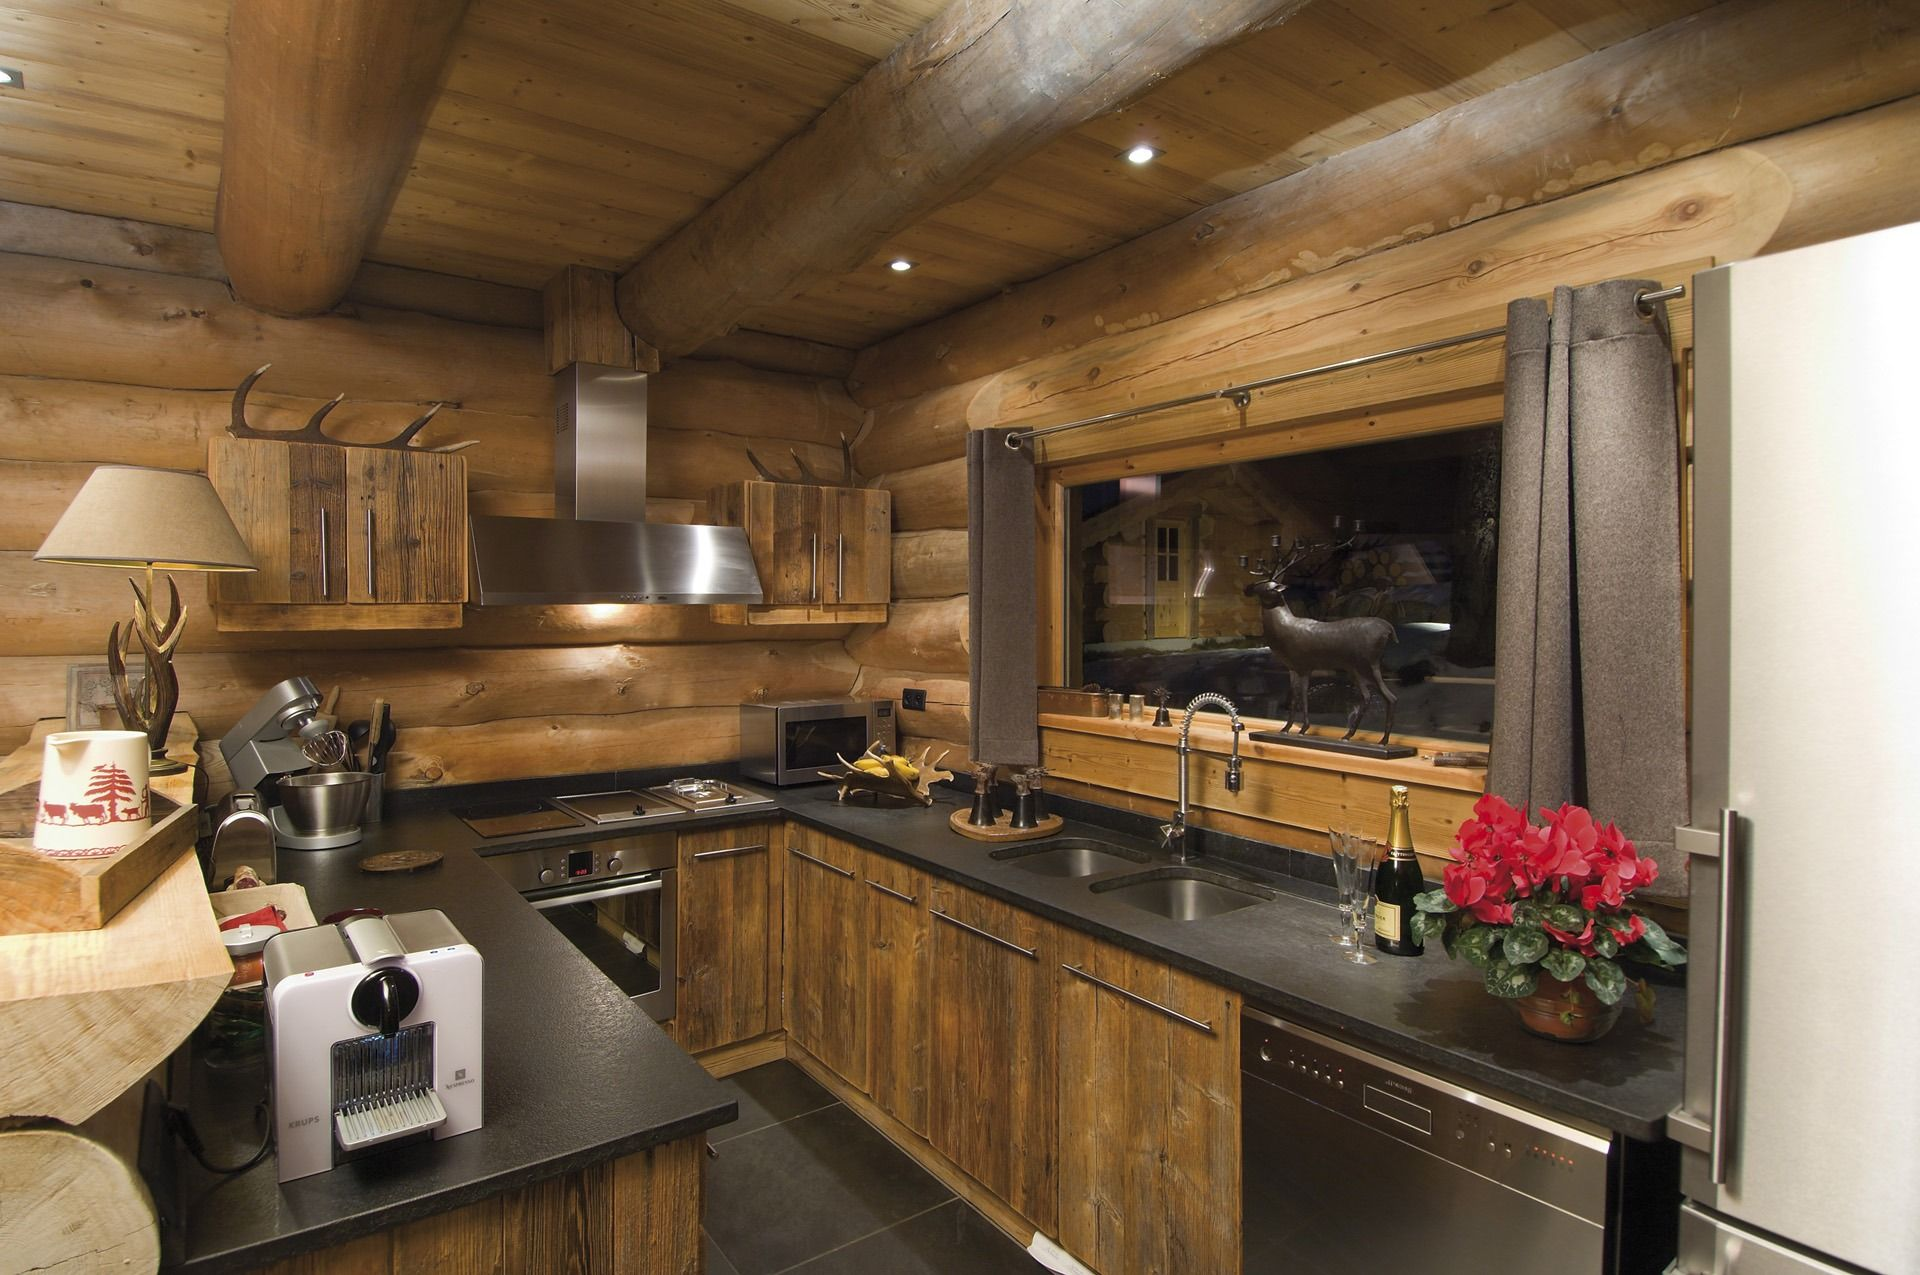 Cuisine Chalet Bois Pin By Renee D On Mountain Condo In 2019 Pinterest Chalet